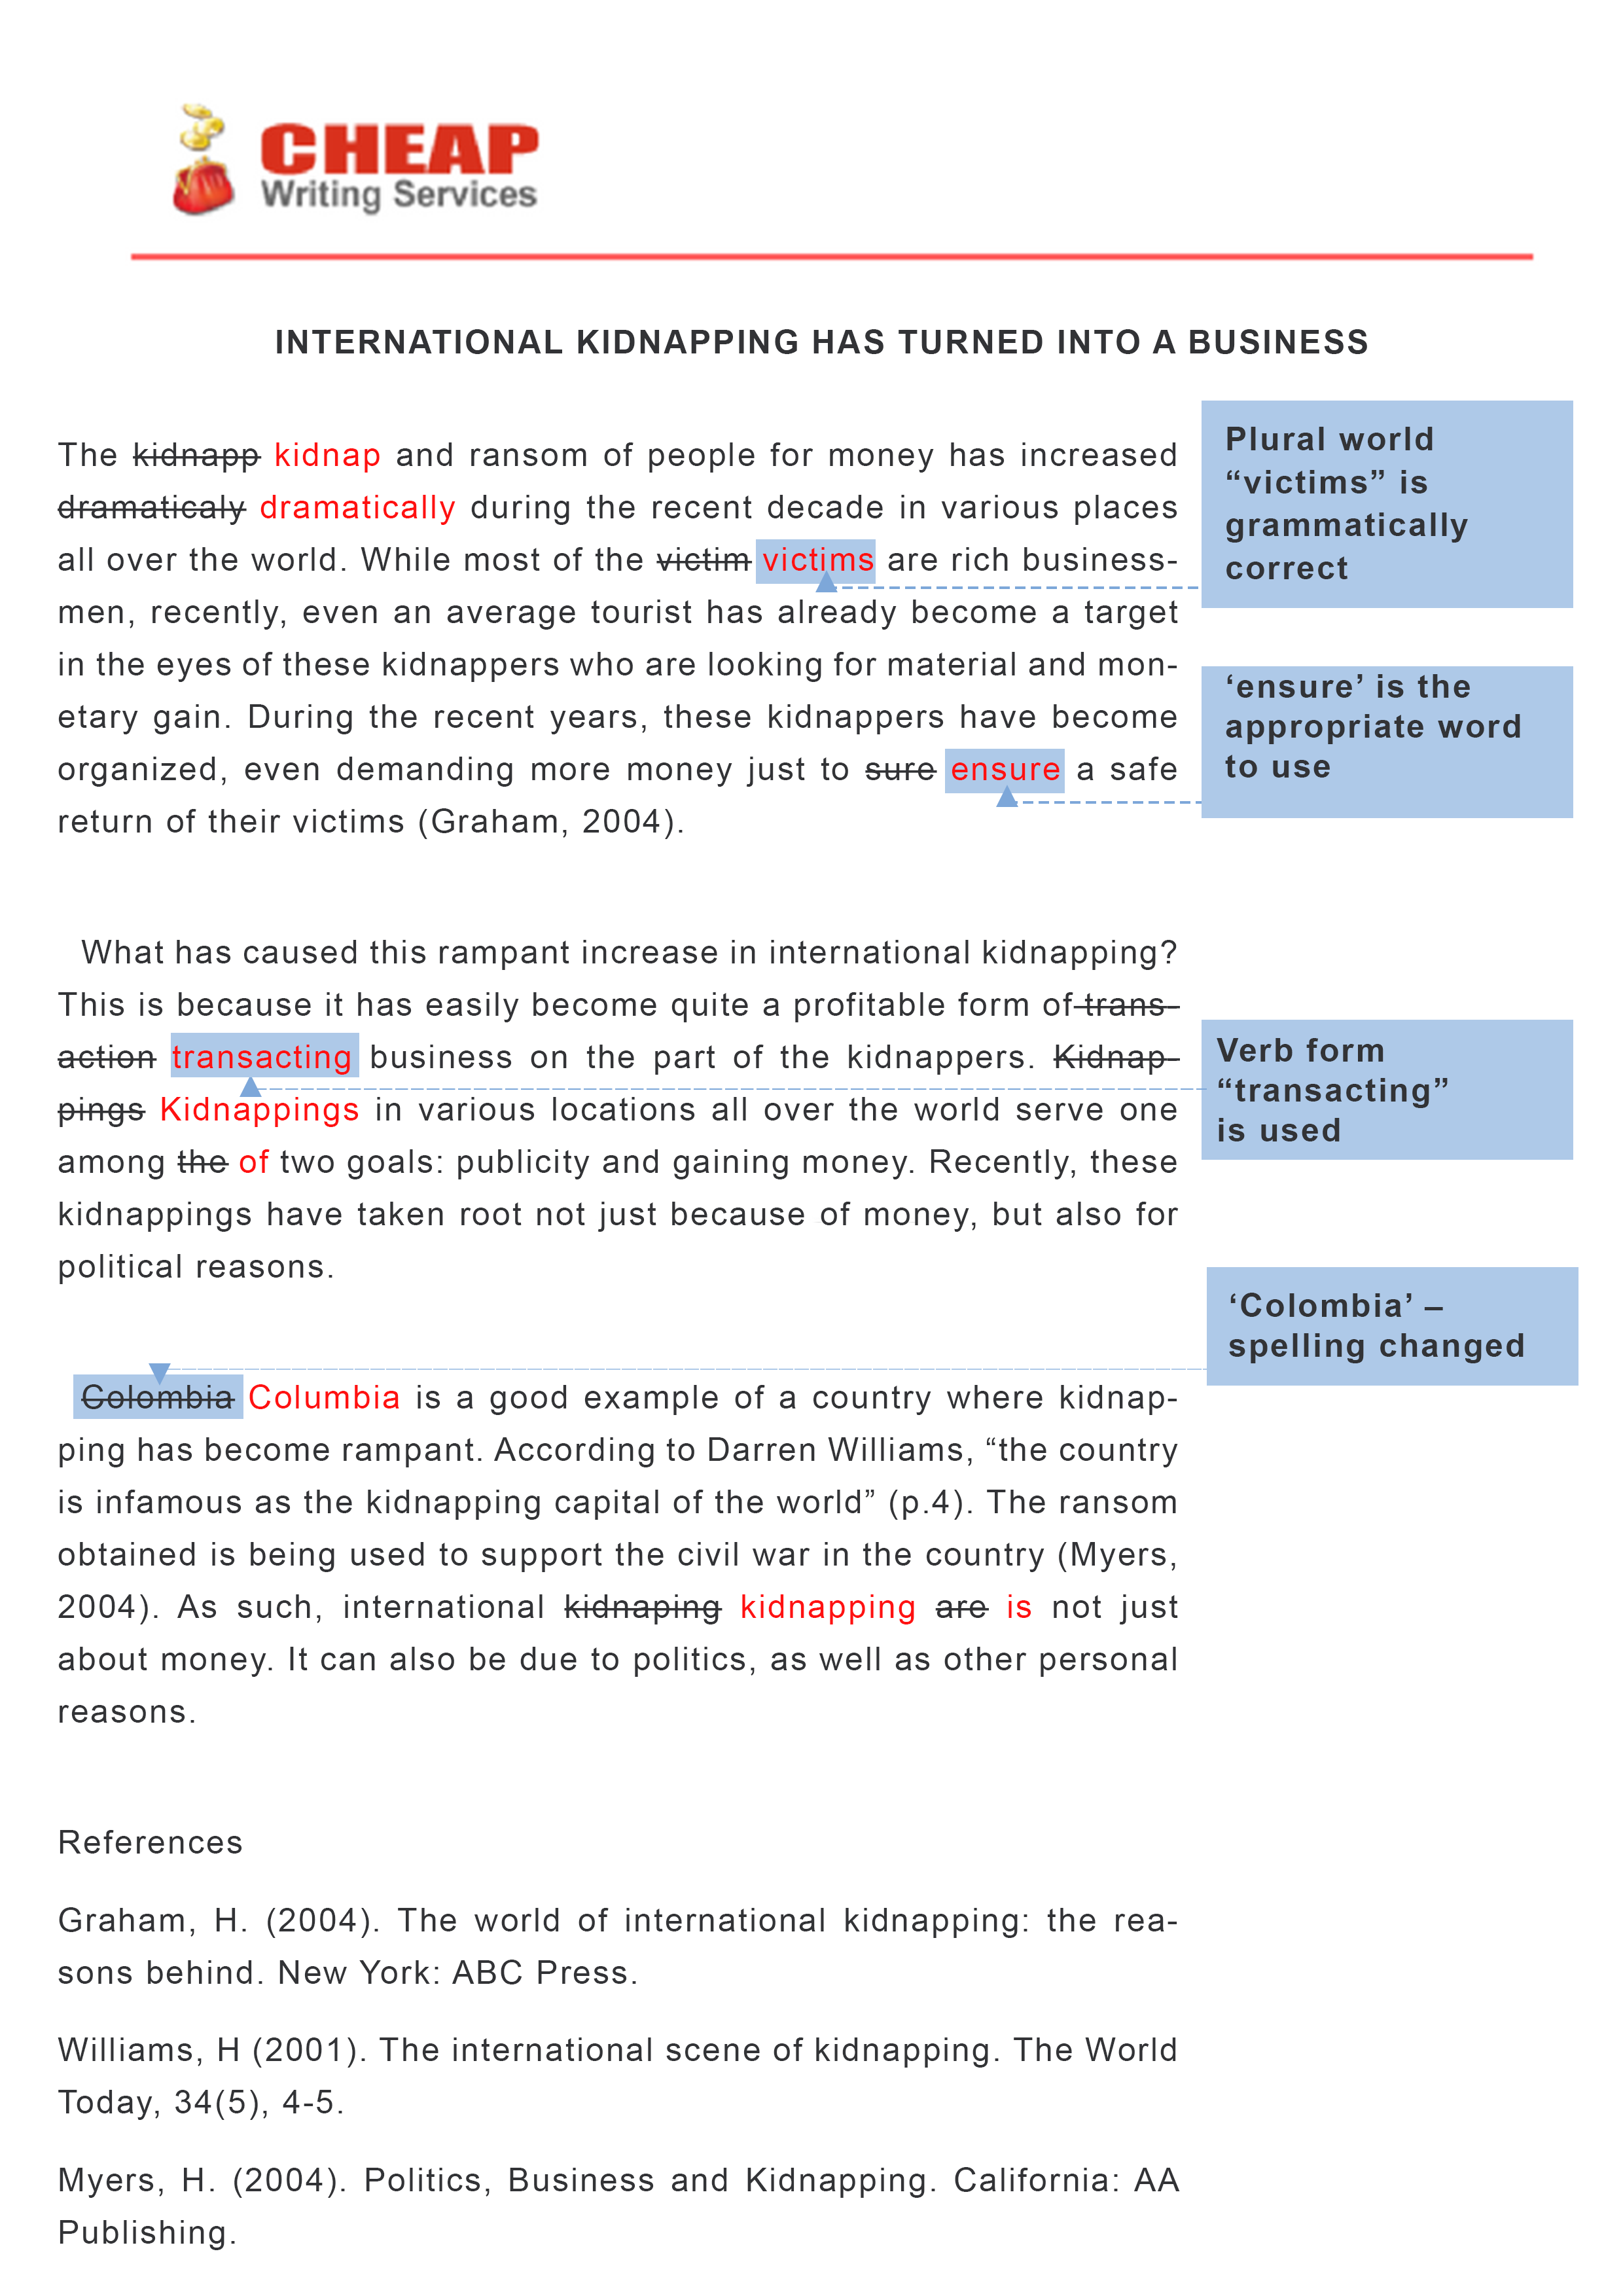 003 Essay Example Proofread My Remarkable Promo Code Reviews Online For Free Full